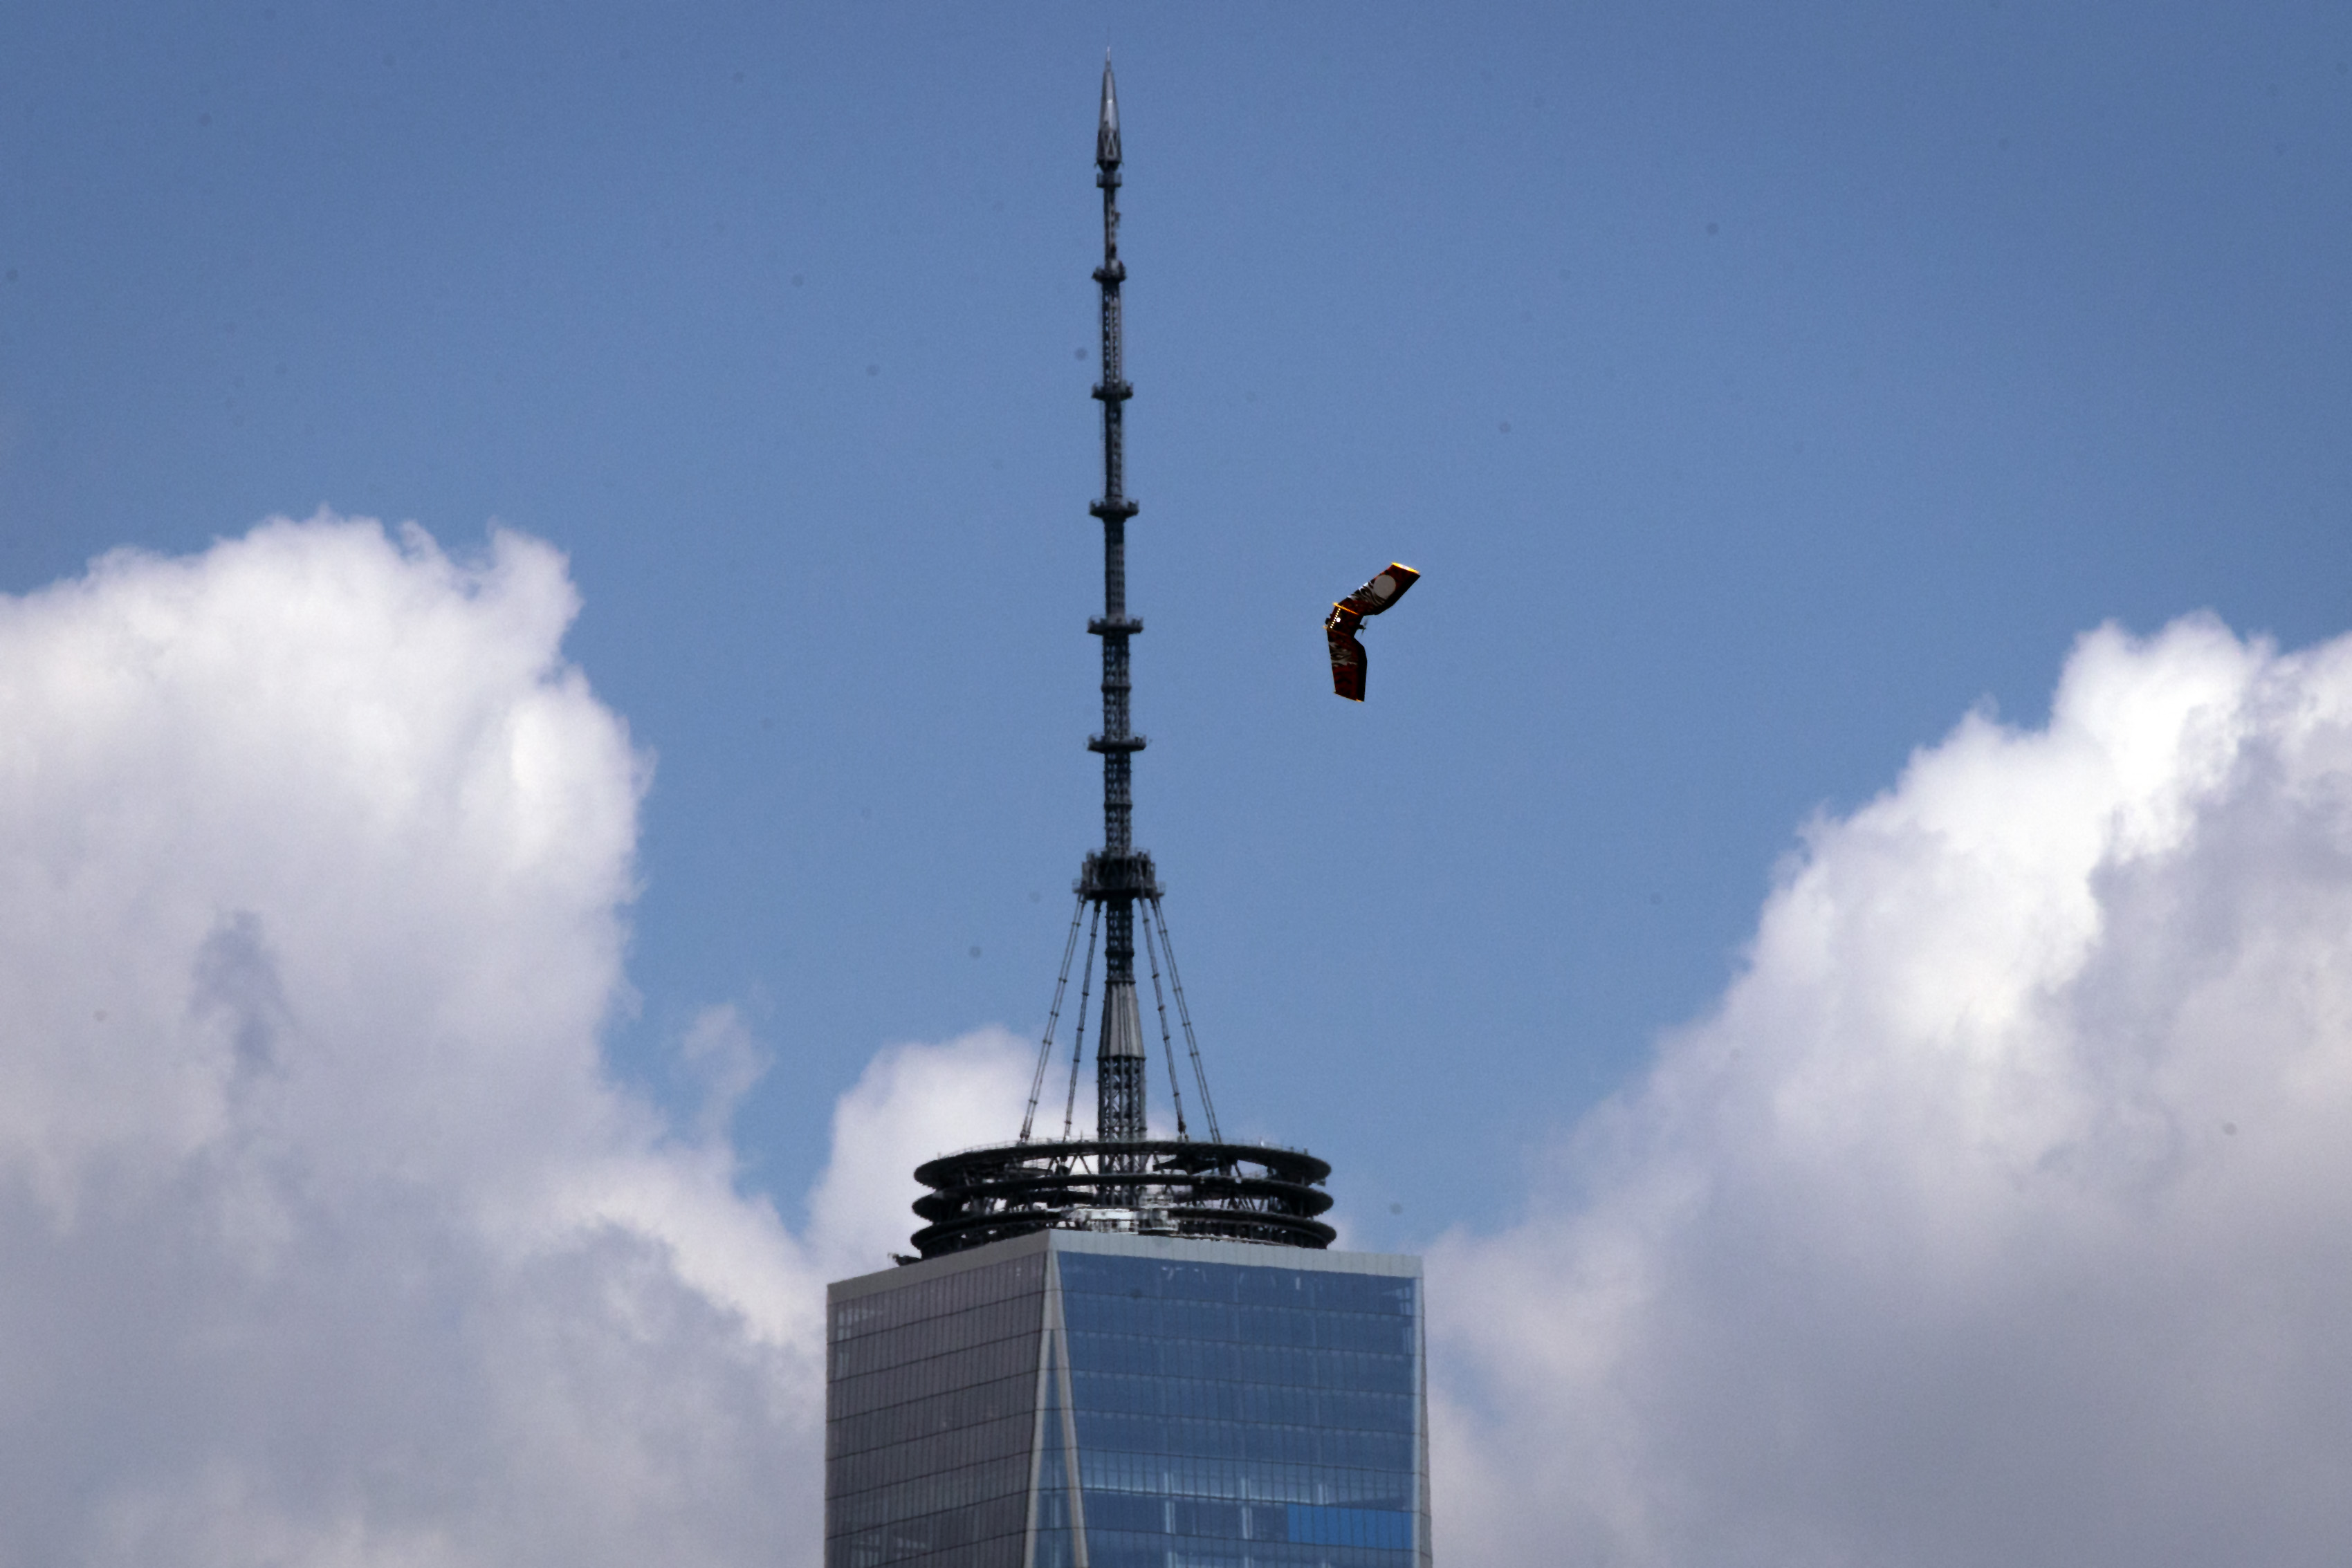 A winged drone flying past the spire of One World Trade Center in New York City in 2016.